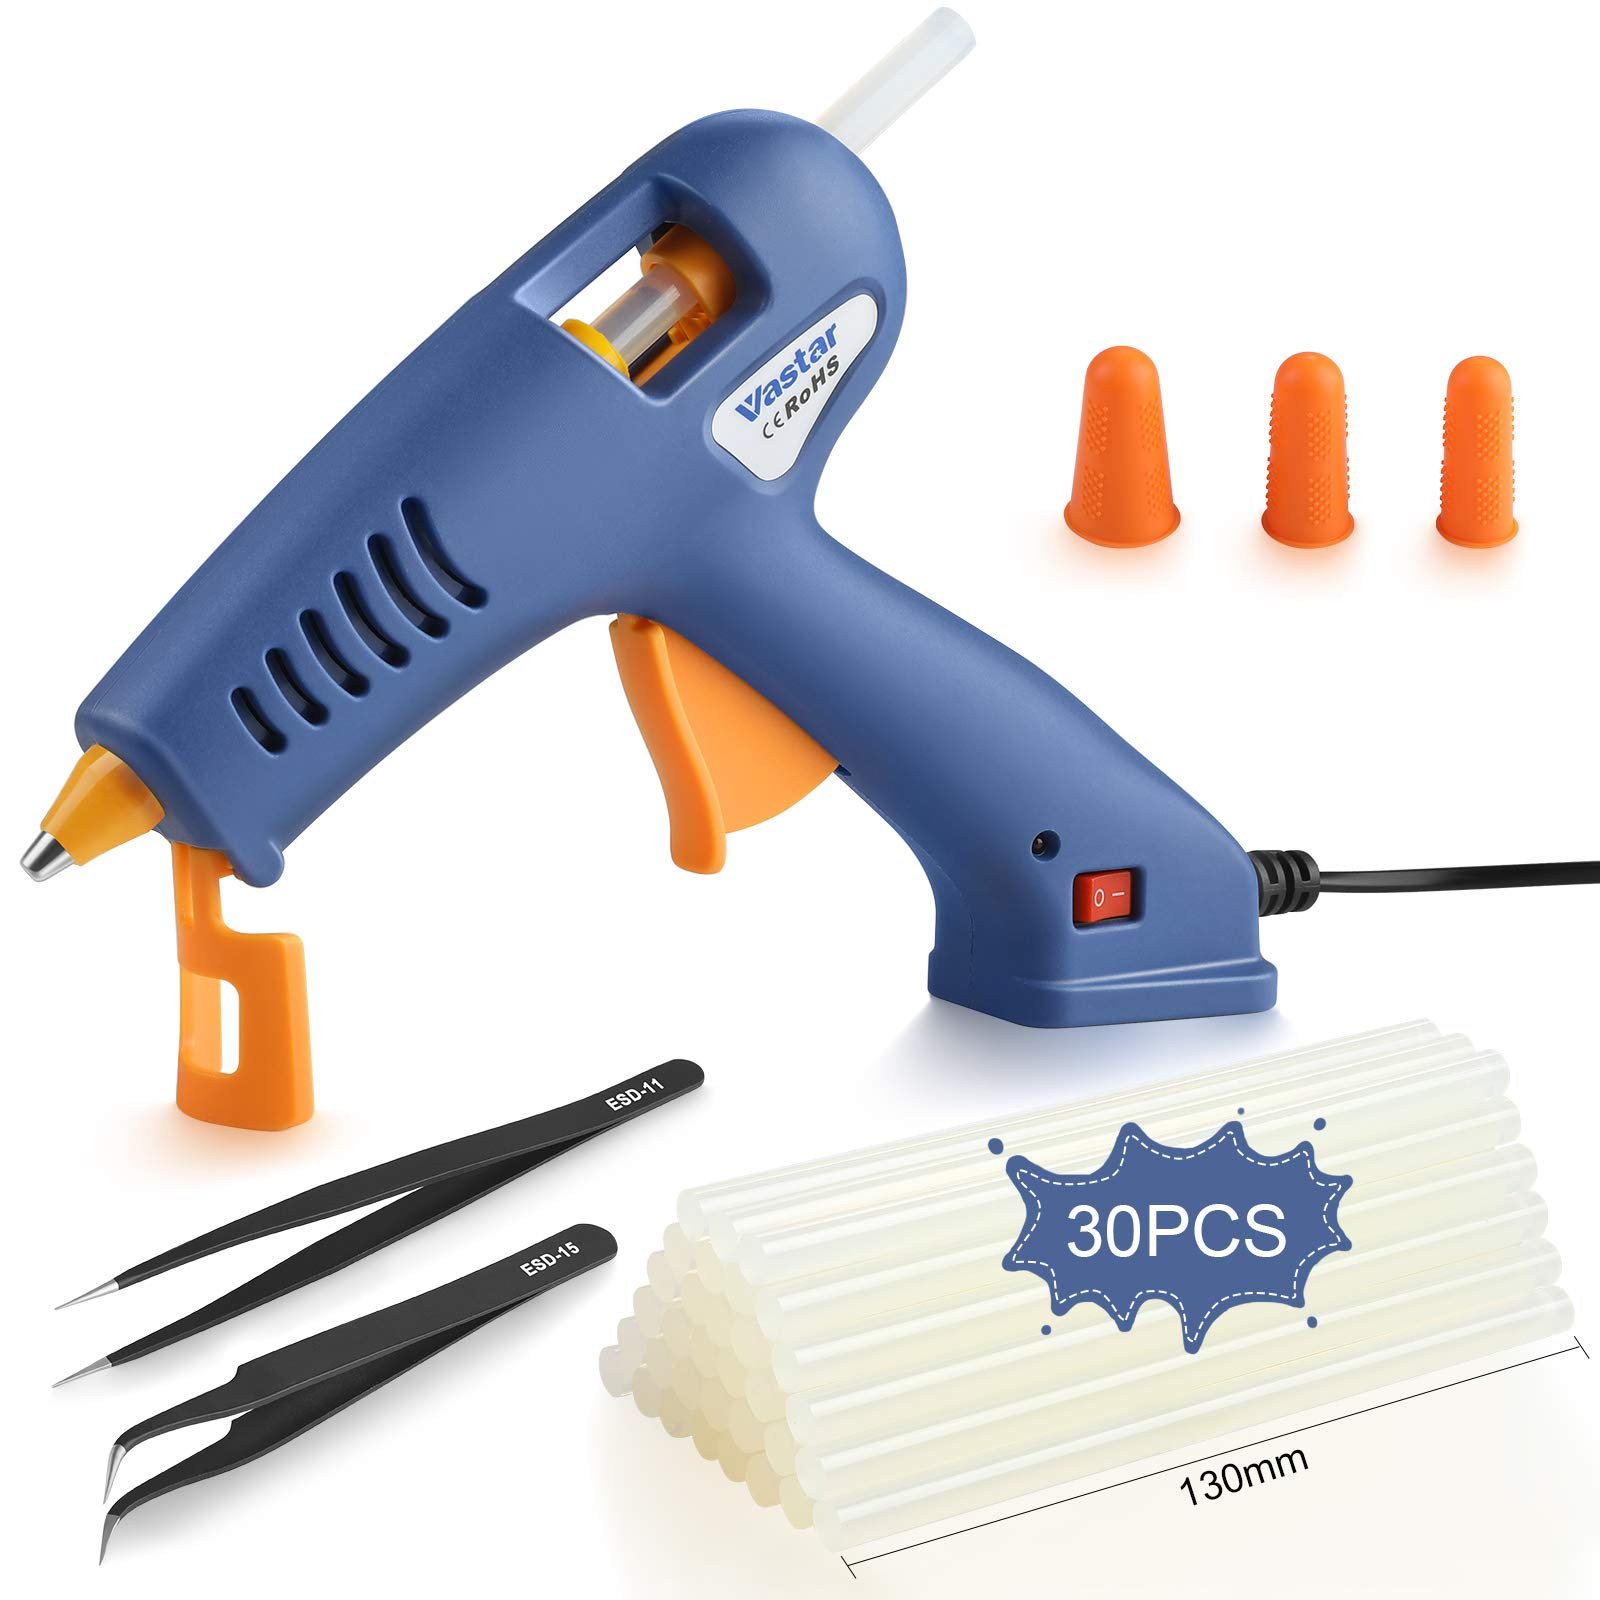 Vastar Hot Glue Gun 6 in 1-with Tweezers,Glue Sticks and Finger Cots,Fast Heating 329°F/165°C Drip-Proof Glue Gun Kit,Used for Artwork, Crafts,Sealing,DIY,Home Maintenance,Cards,Glass(60W)